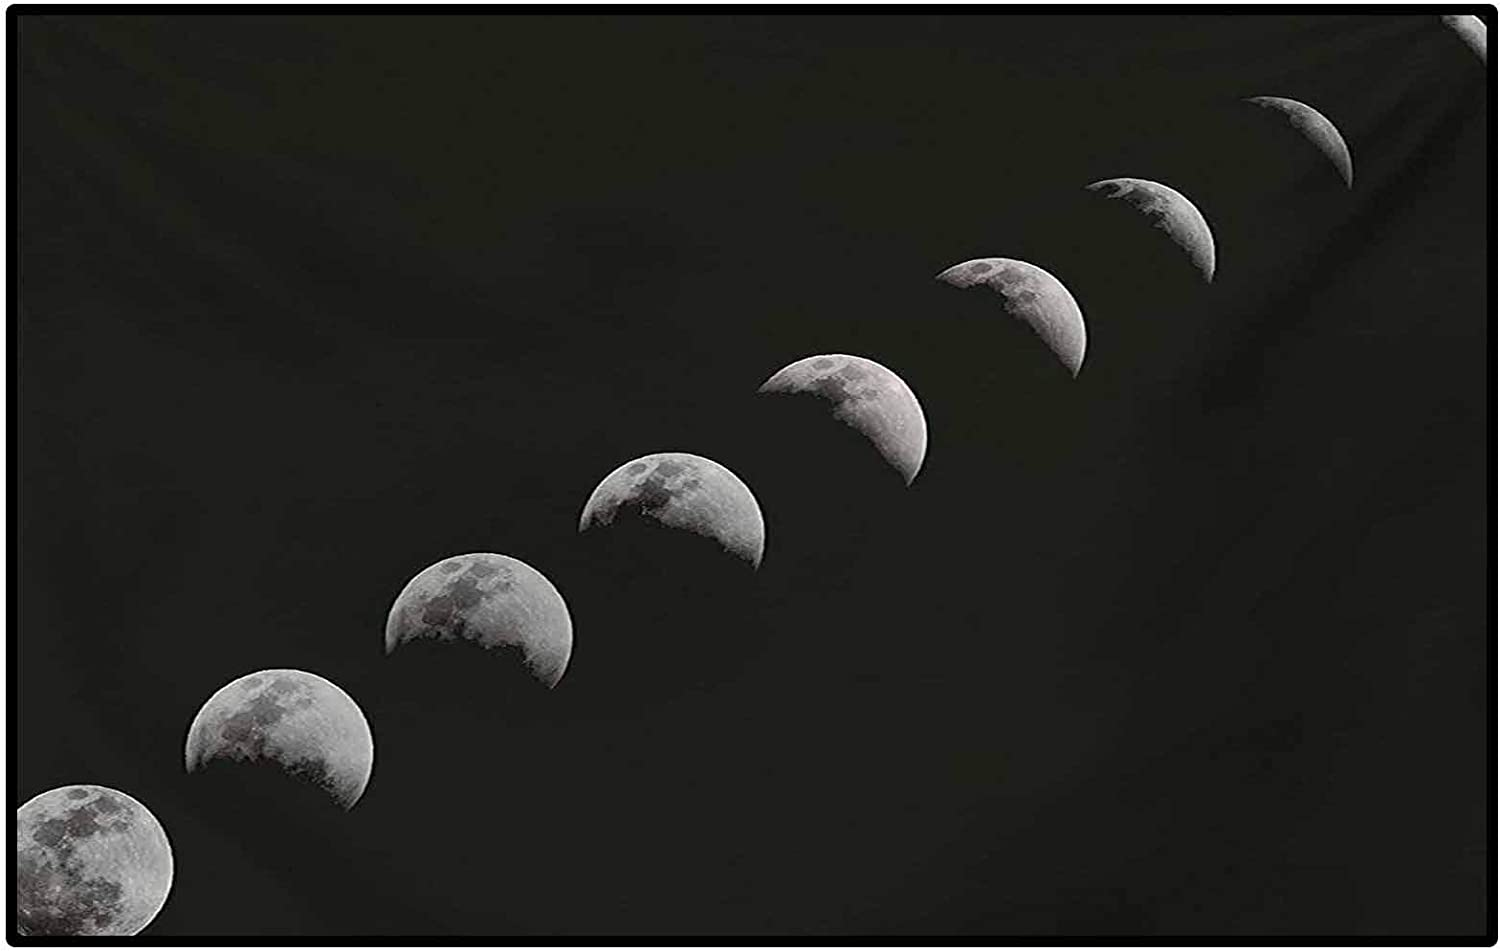 Moon Phases Runner Rug For Hallway Home Area Rugs A Lunar Eclipse Changing Phase Of The Moon Astronomy And Universe Theme Kids Home Decor Rugs Black Pale Grey 3 X 5